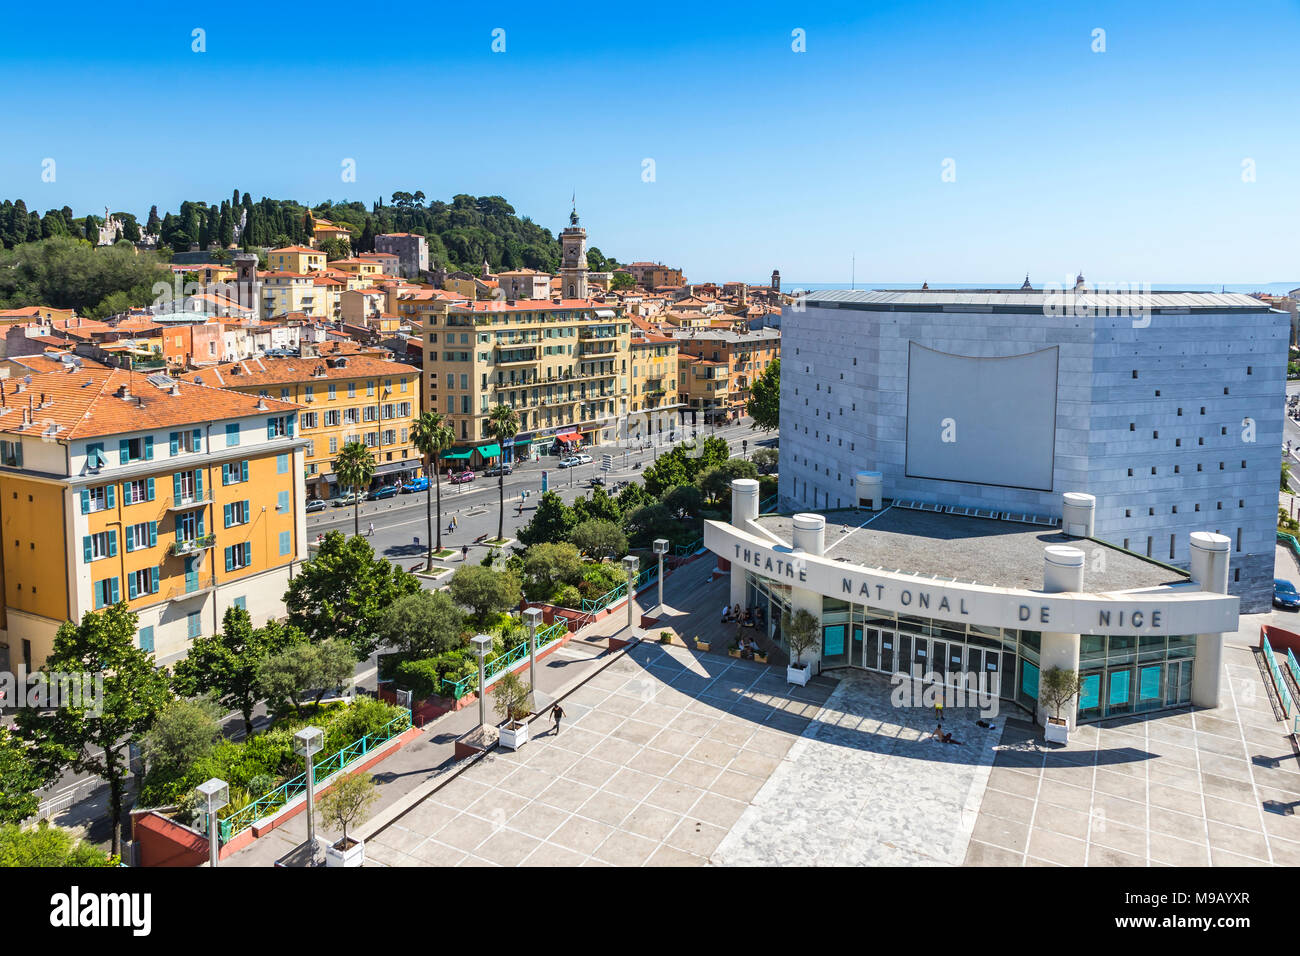 NICE, FRANCE - JUNE 23, 2016: Aerial view of the National Theater of City of Nice (Theatre National de Nice) and Promenade des Arts Stock Photo